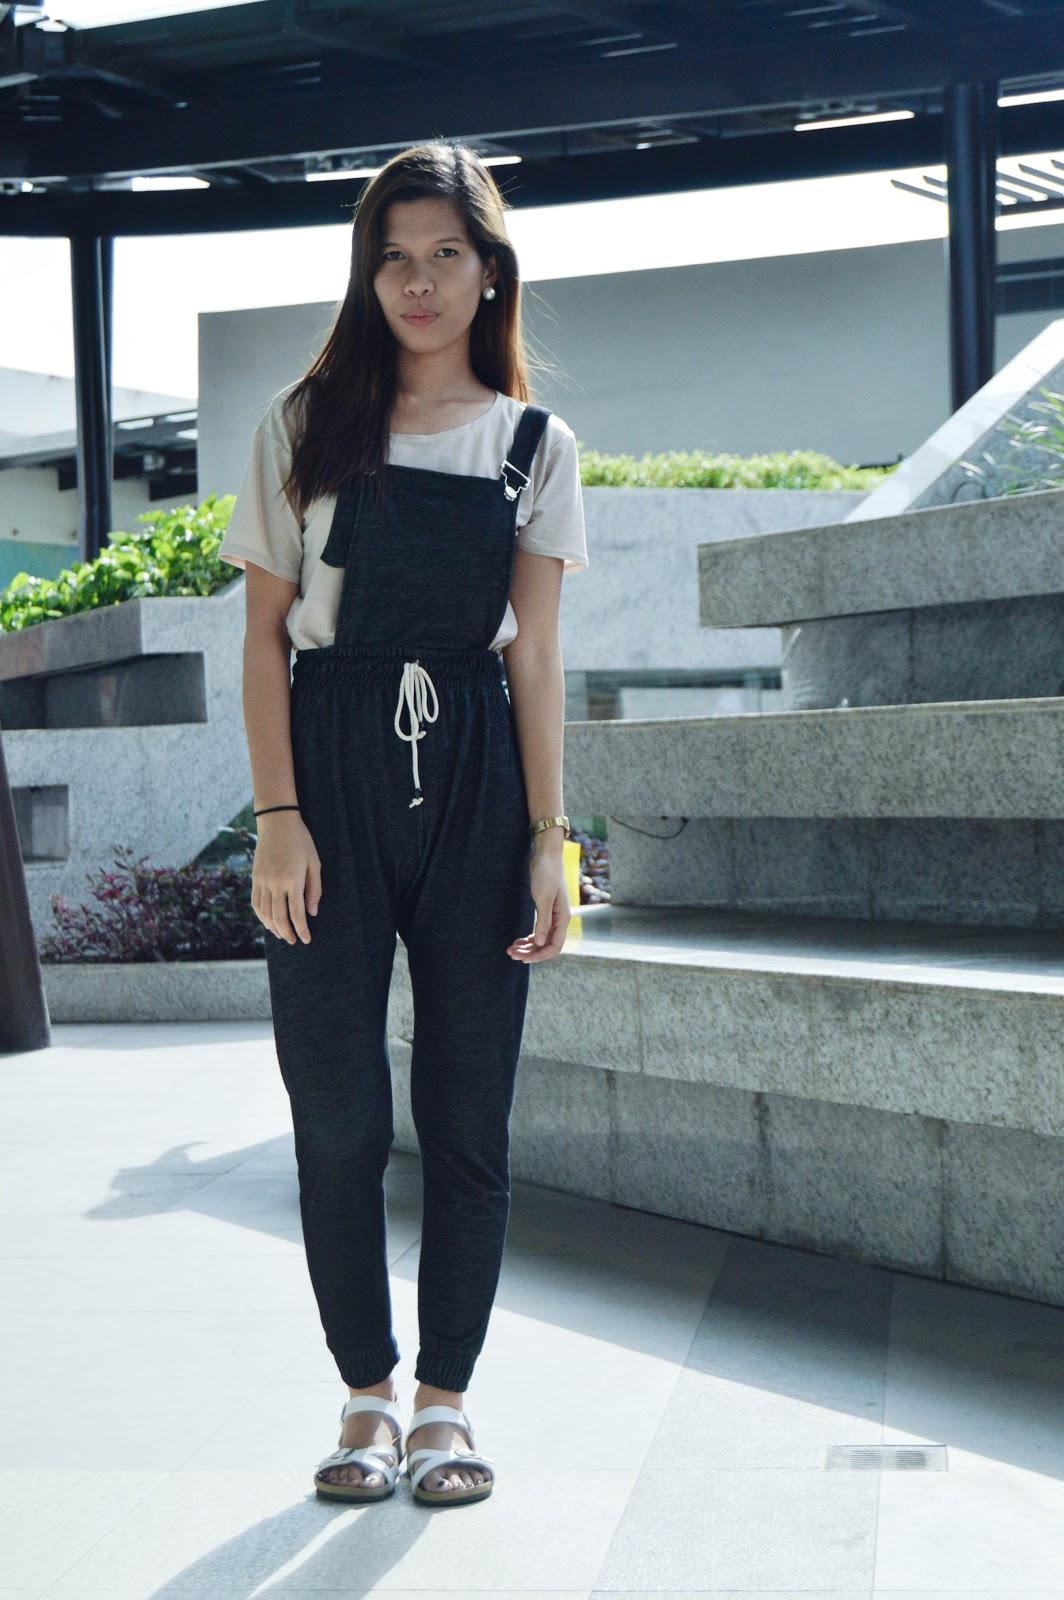 fashion blogger, style blogger, cebu blogger, cebu style blogger, blogger, filipina blogger, cebuana blogger, nested thoughts, katherine cutar, katherine anne cutar, katherineanika, katherine annika, ootd, ootd plipinas, perky, perky outfit, overalls, fashion overalls, overall ootd, overall outfit